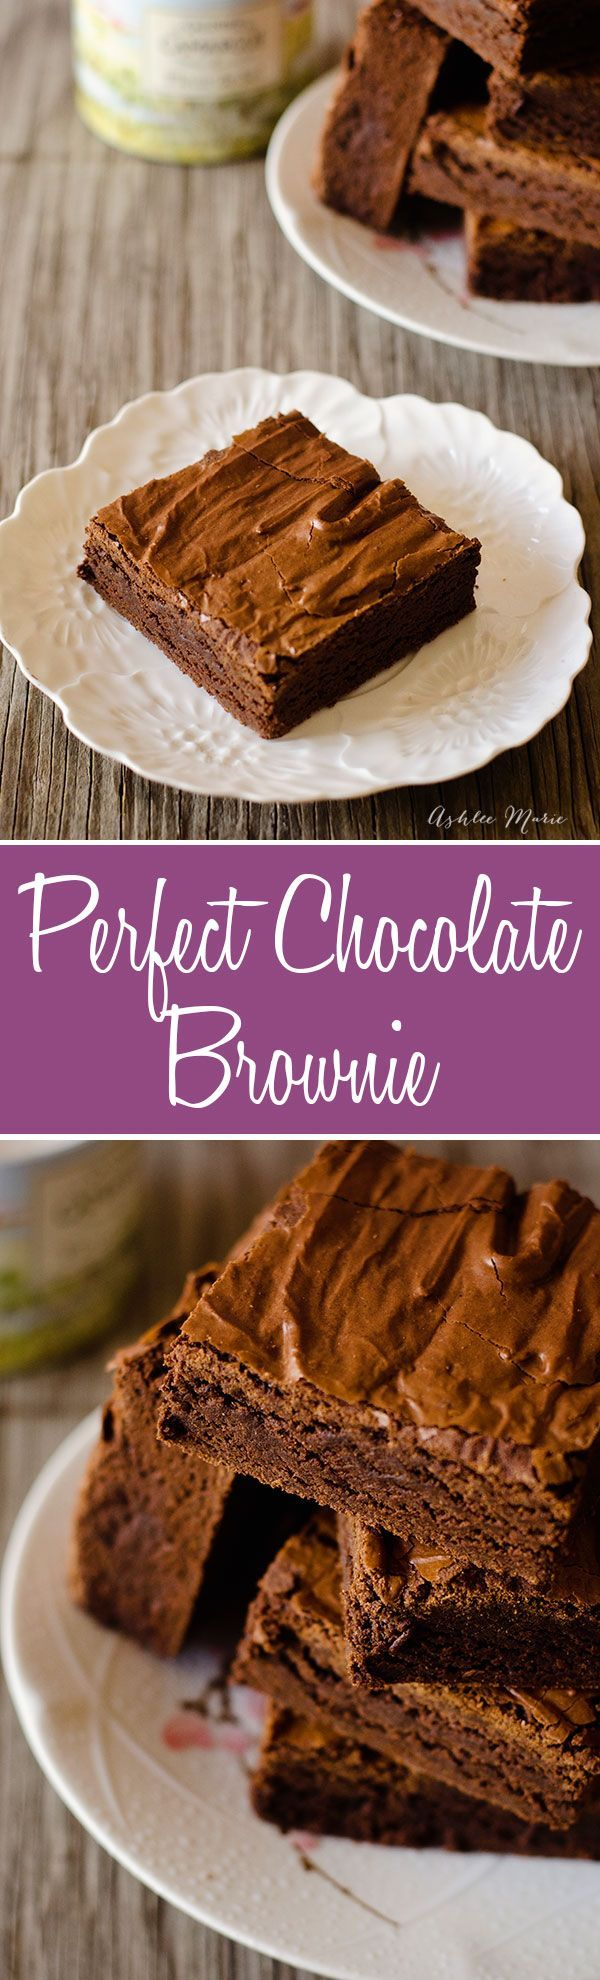 the perfect chocolate brownie recipe, great flavor and texture and easy to make